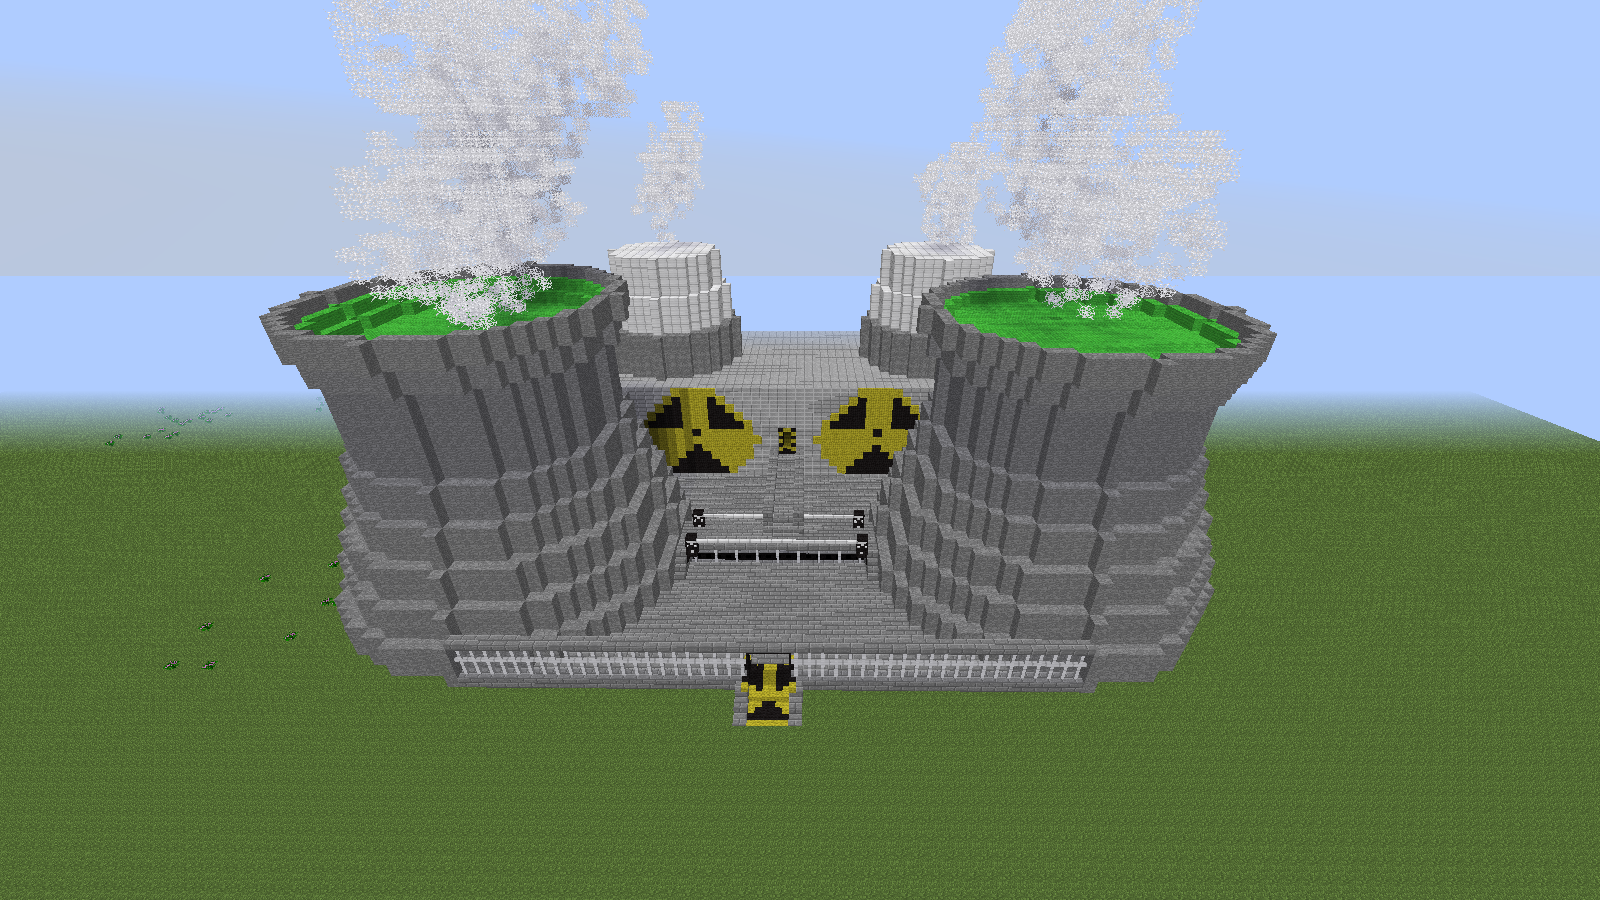 wrg 3714] nuclear power plant schematic minecraftNuclear Power Plant Schematic Minecraft #5